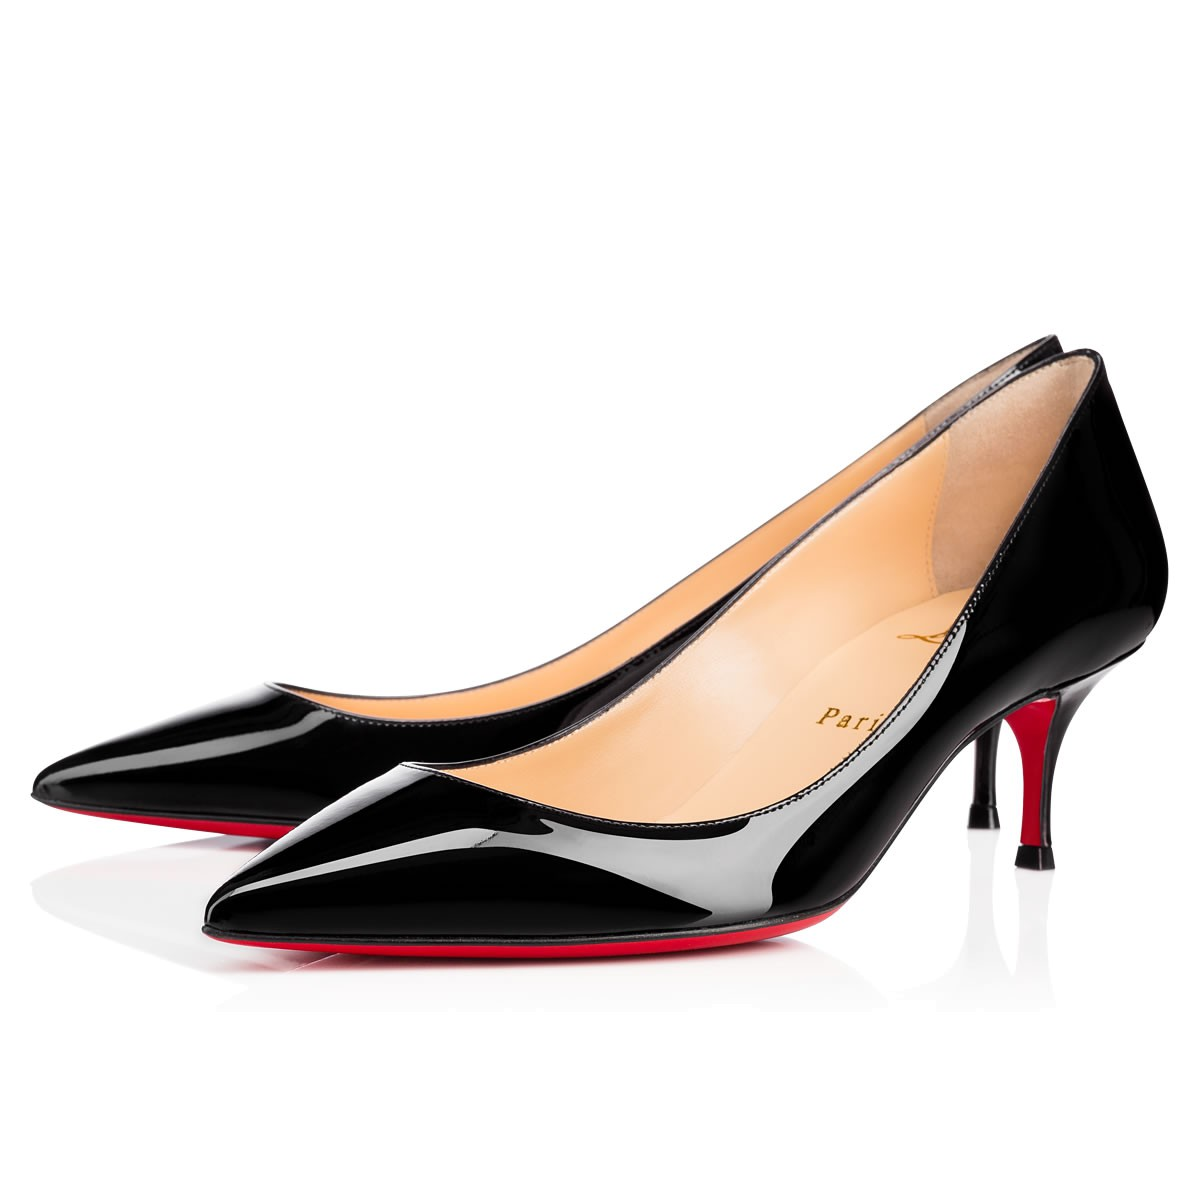 Pigalle Follies 55 Leather Pumps